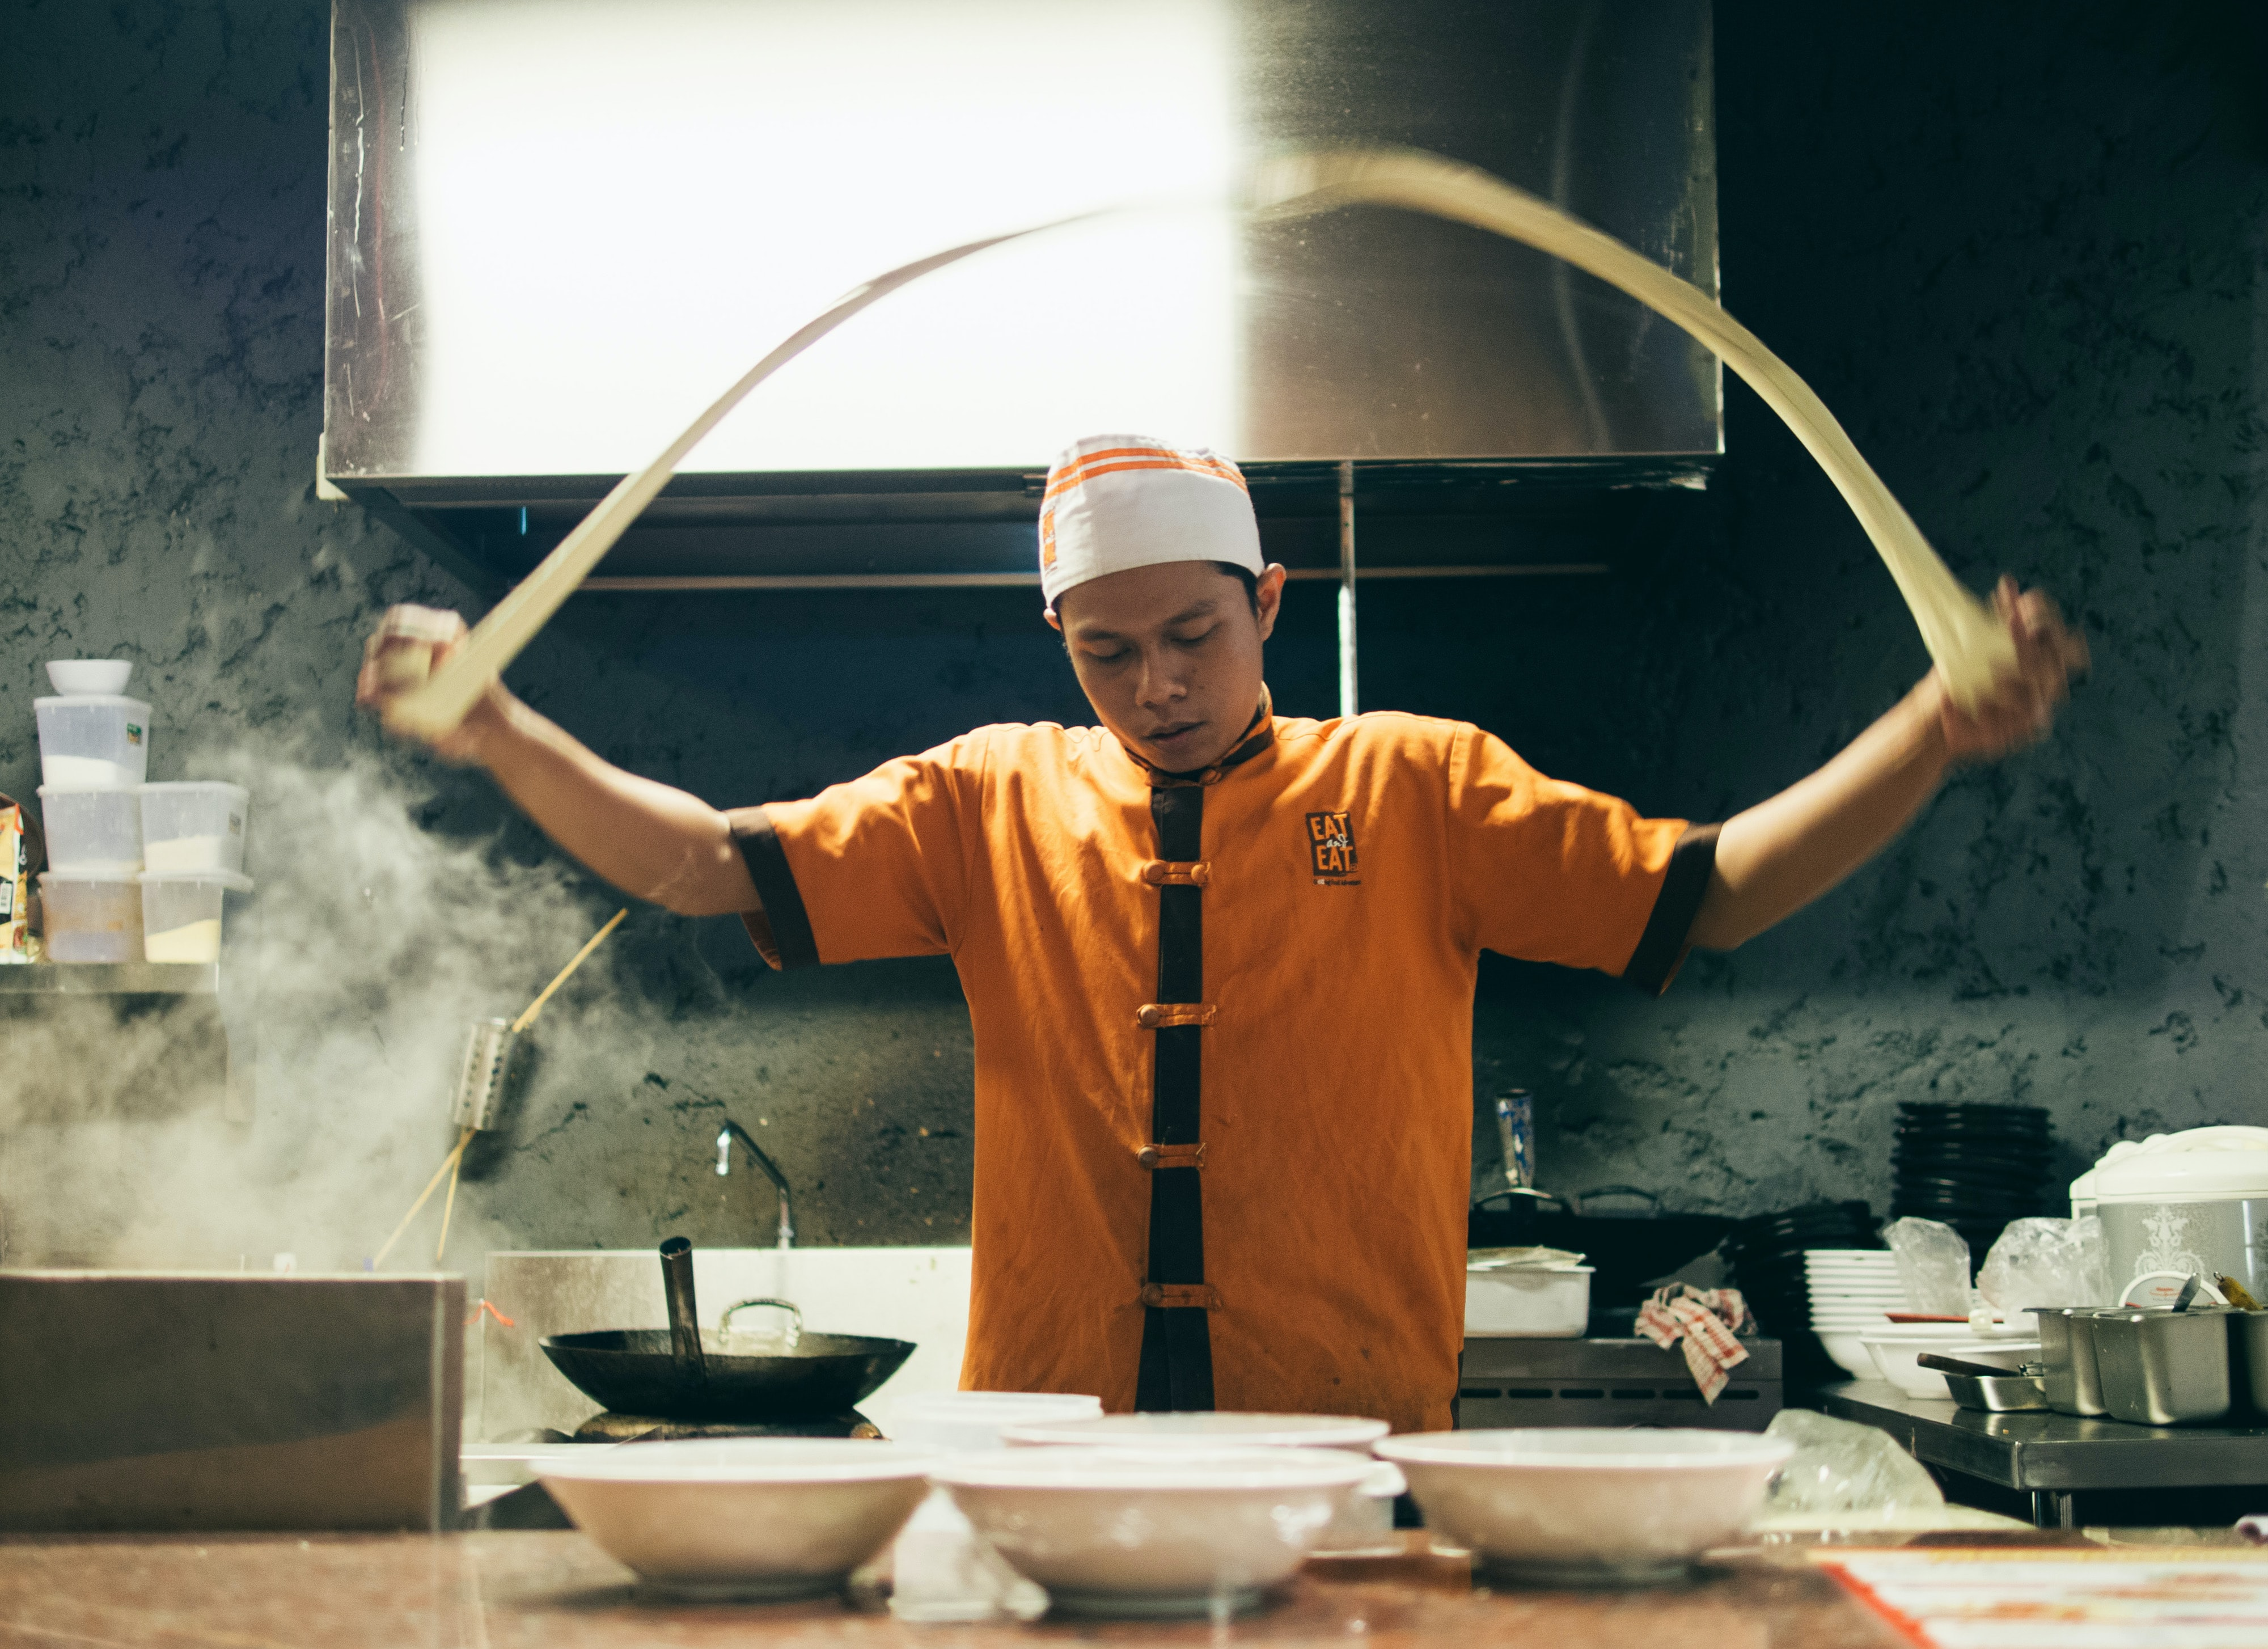 A restaurant chef stretching dough in a kitchen